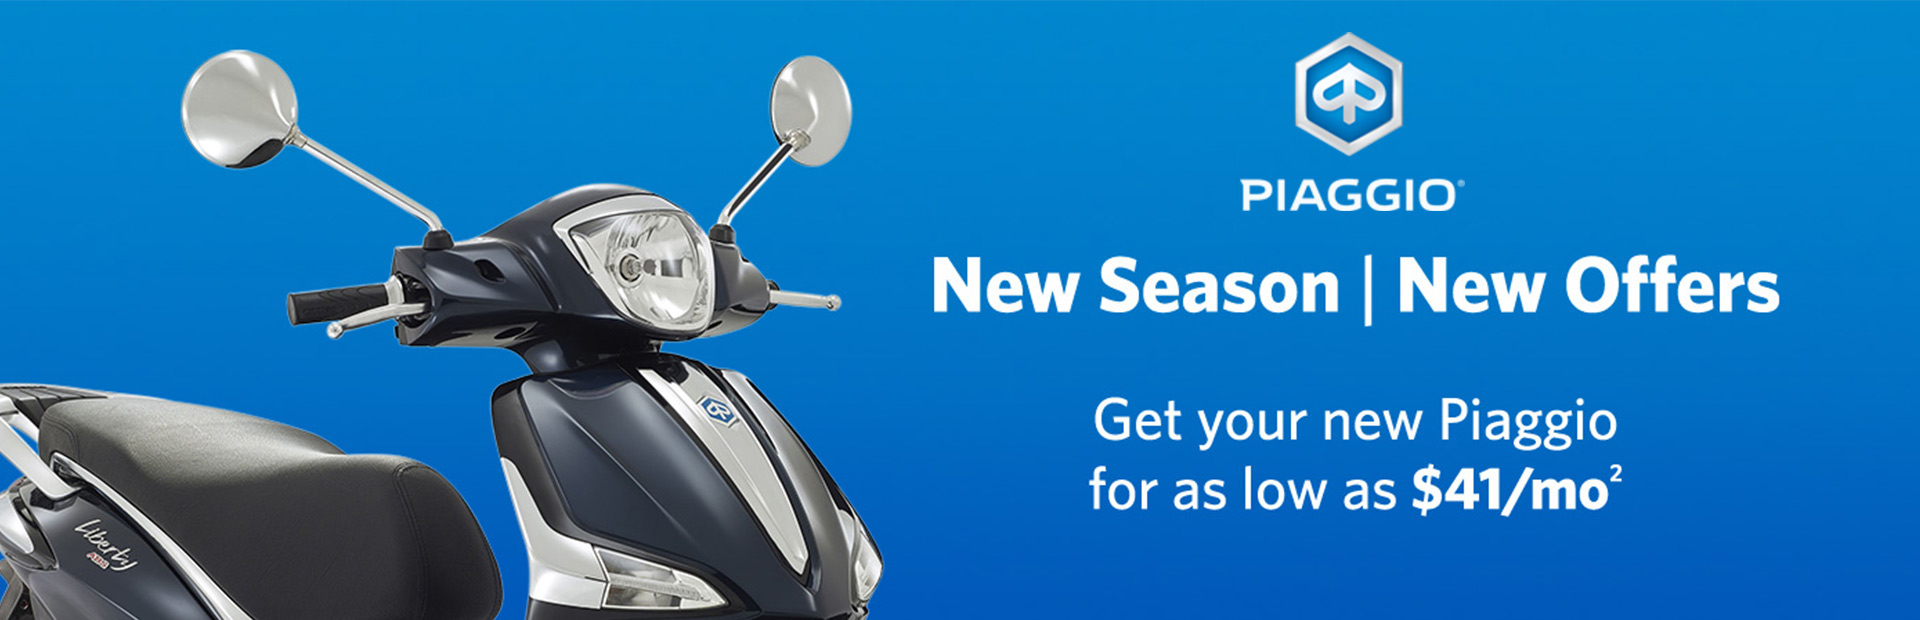 Piaggio: New Season | New Offers